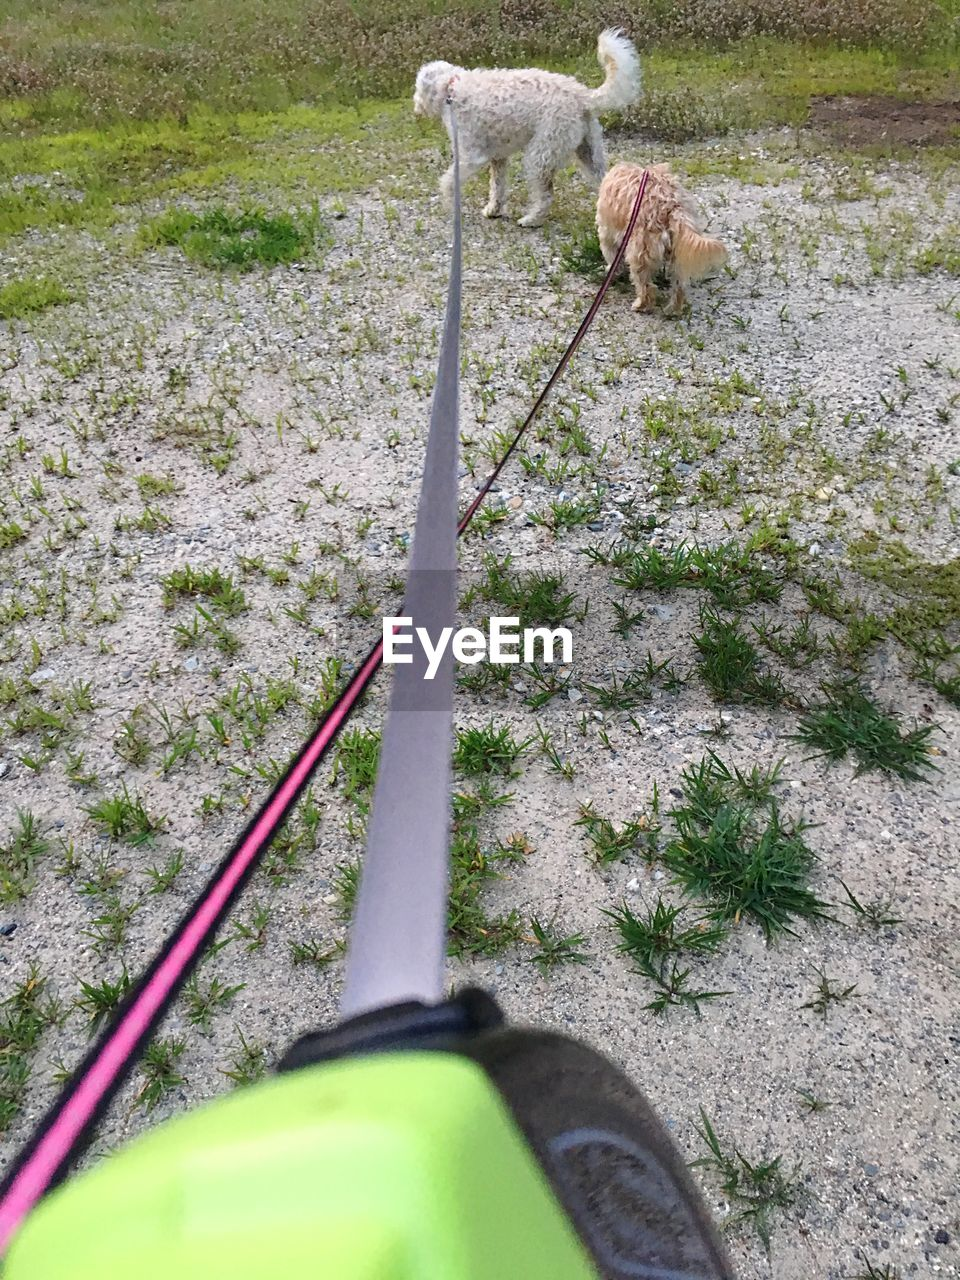 dog, day, pets, animal themes, domestic animals, mammal, grass, outdoors, nature, human body part, one person, people